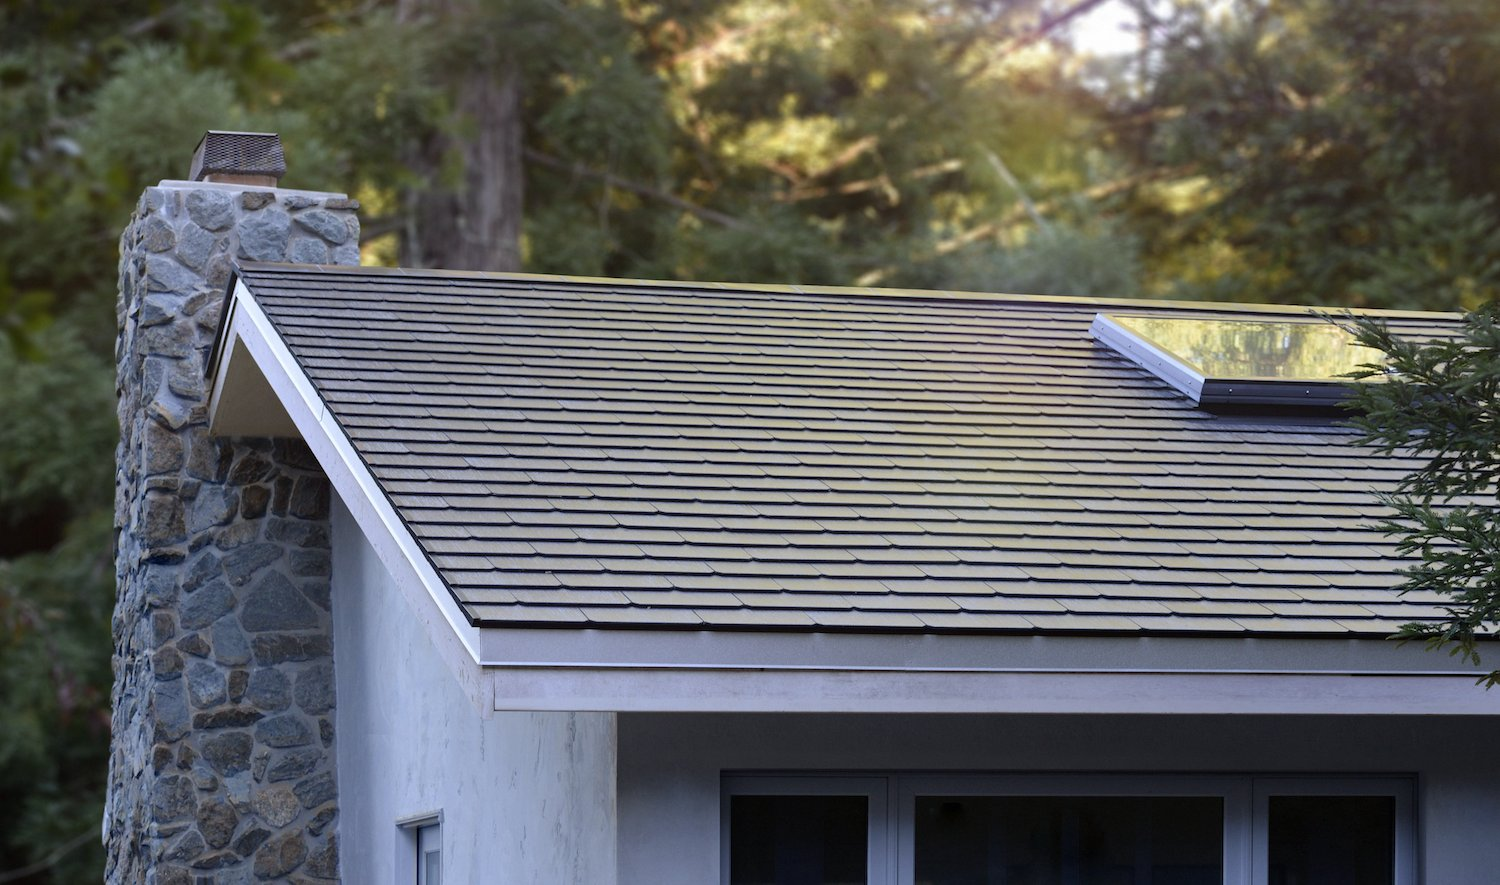 tesla-solar-roof-tile-home-install-close-up